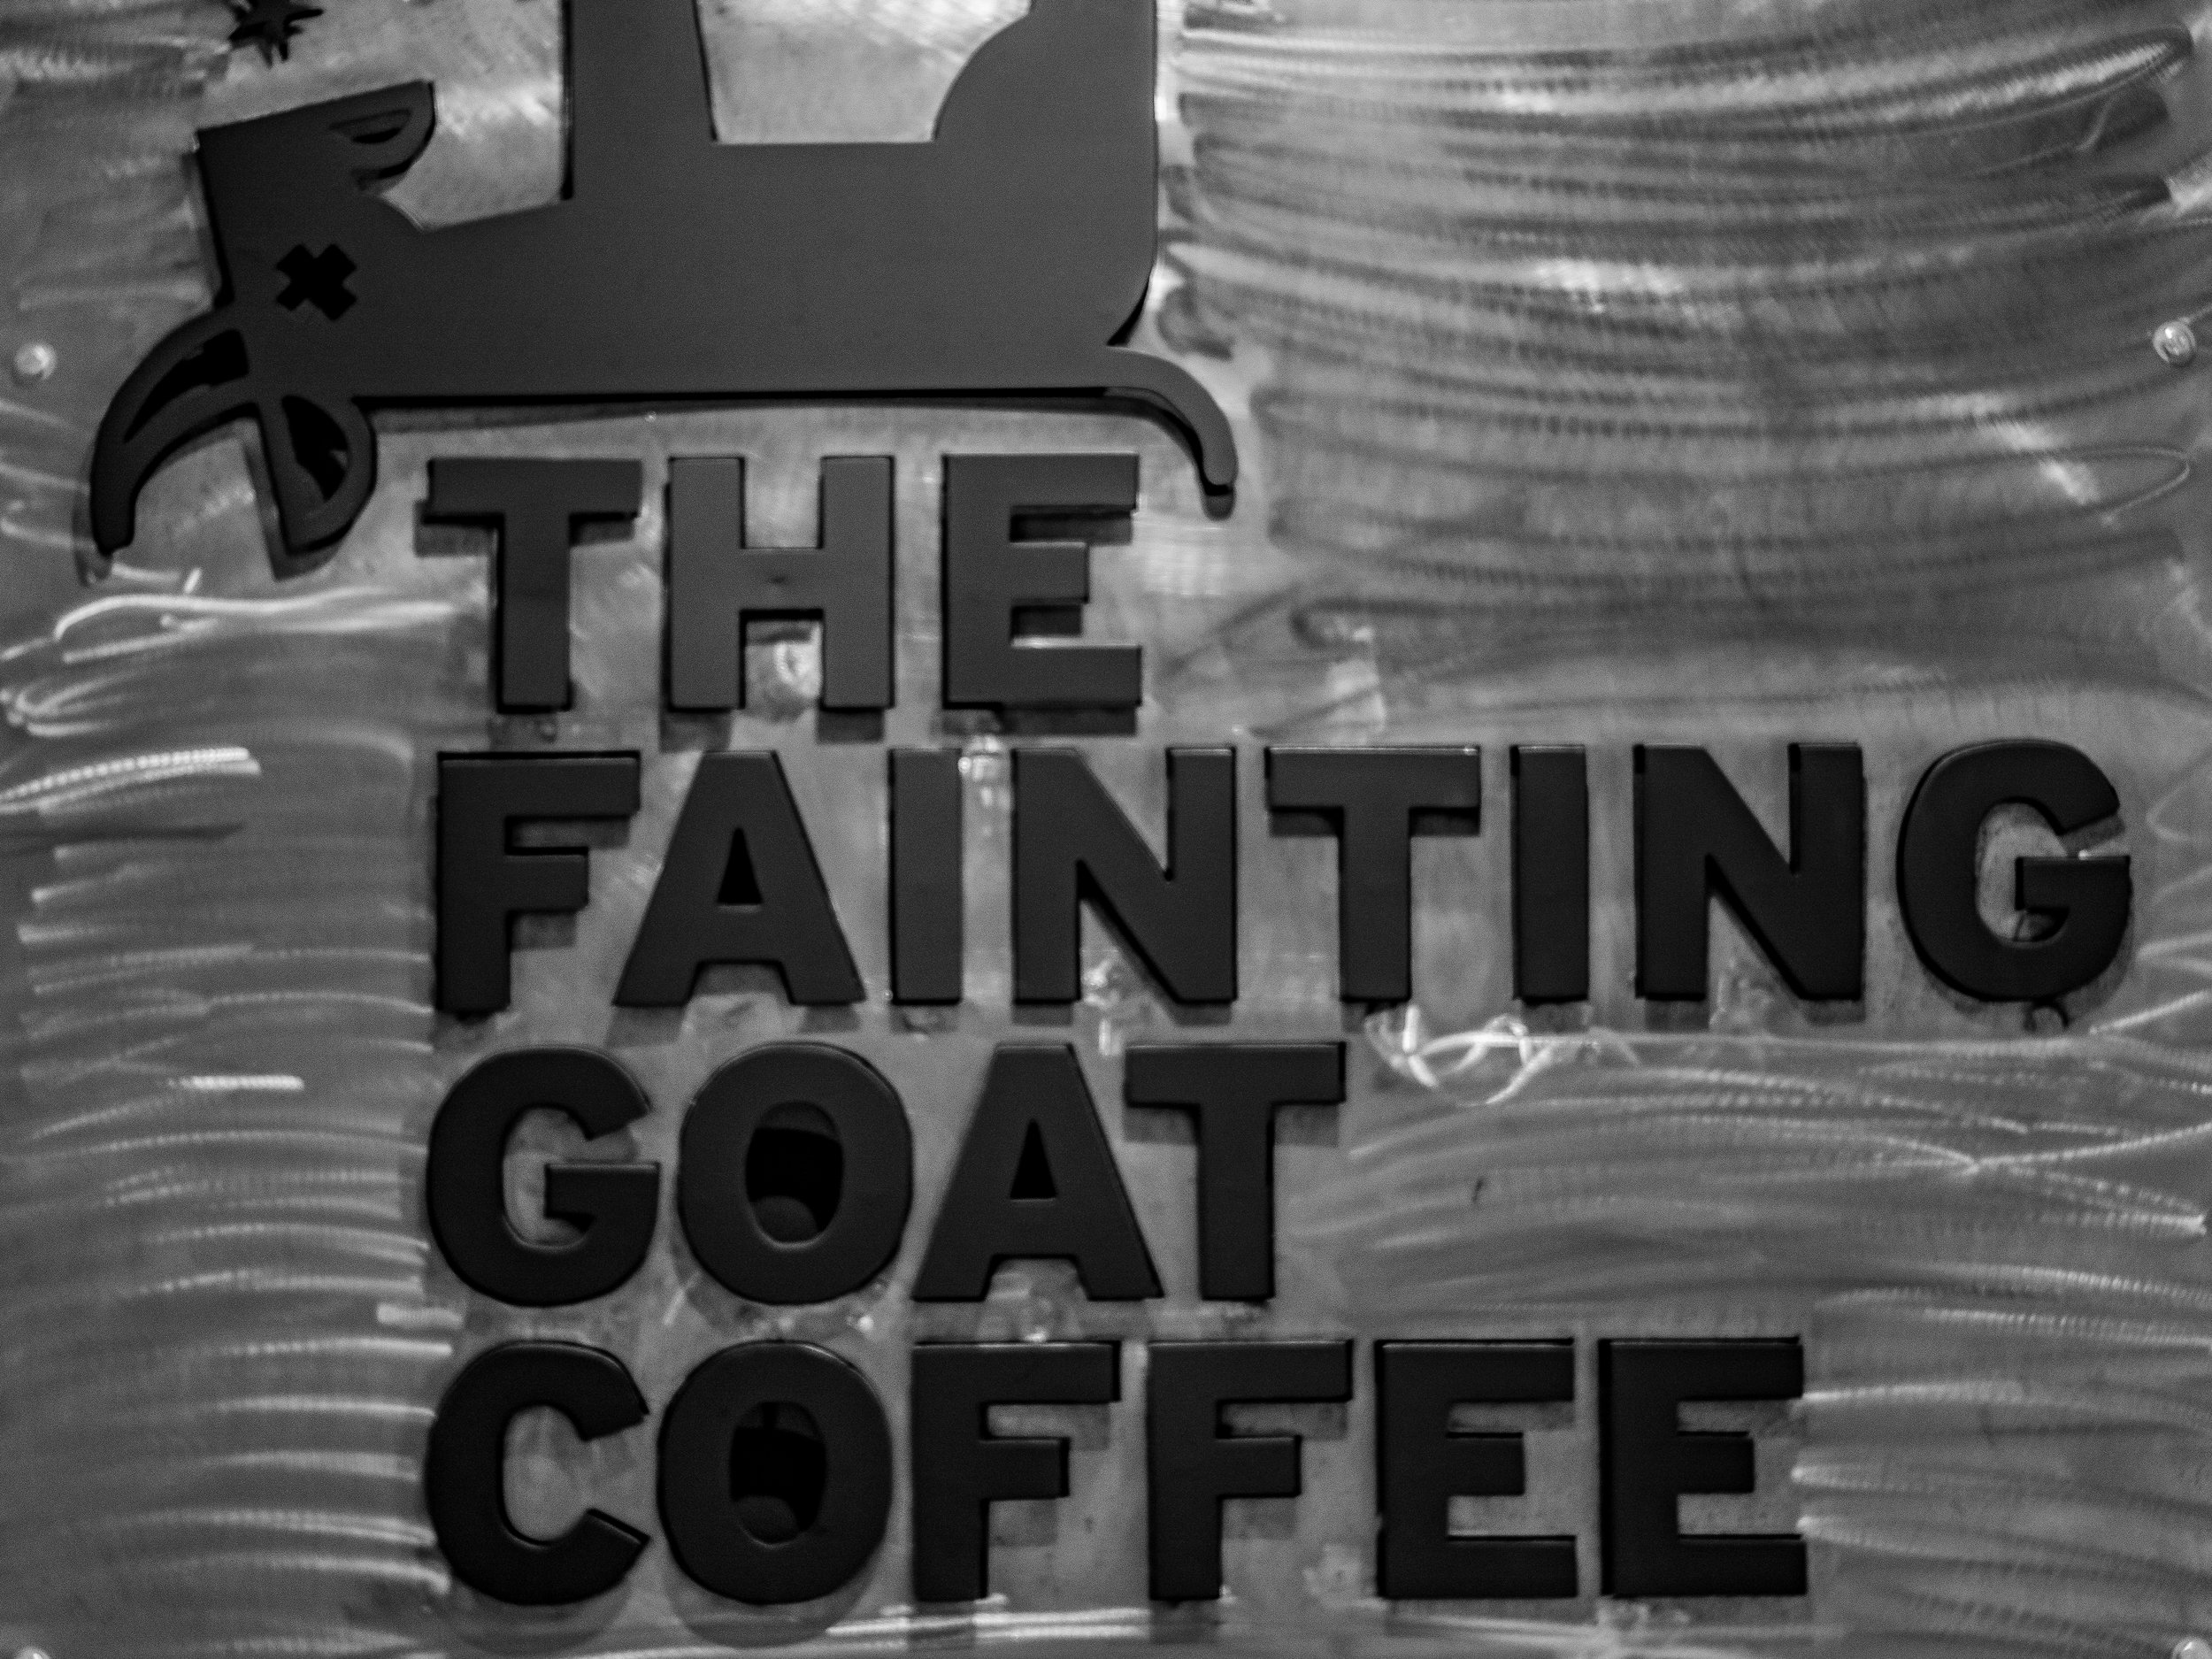 FAINTING GOAT COFFEE – SPRING HILL, TN